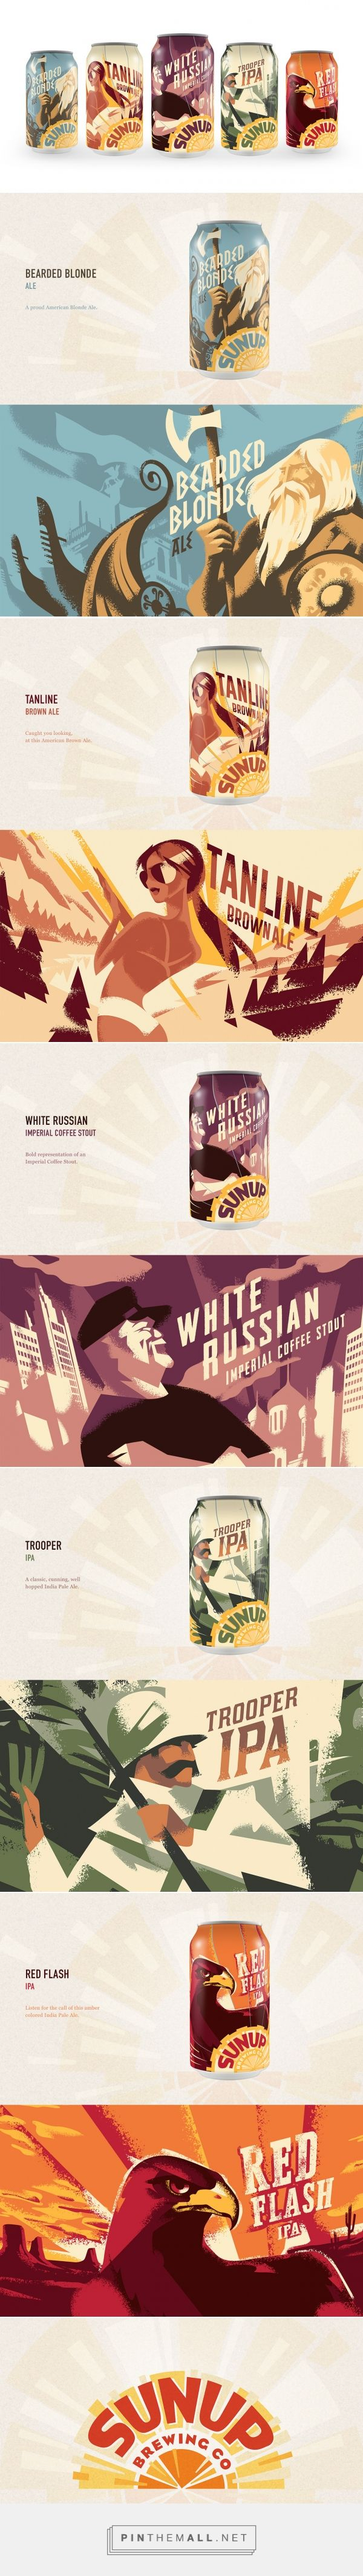 SunUp Brewing Co - Packaging of the World - Creative Package Design Gallery - http://www.packagingoftheworld.com/2016/08/sunup-brewing-co.html